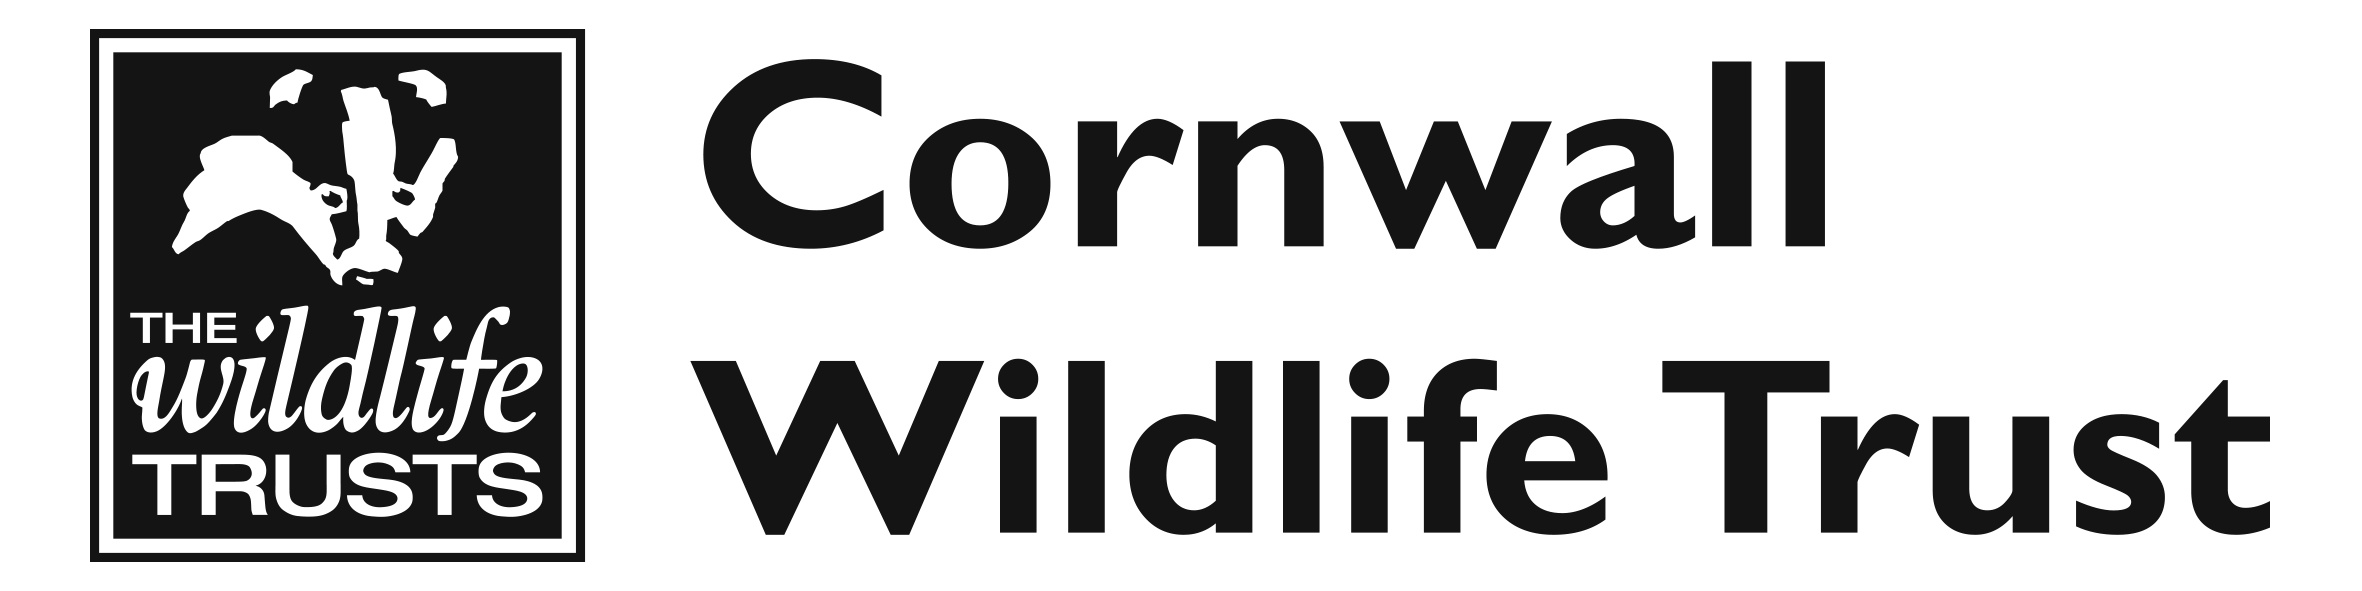 Cornwall Wildlife Trust are a charity based in Cornwall